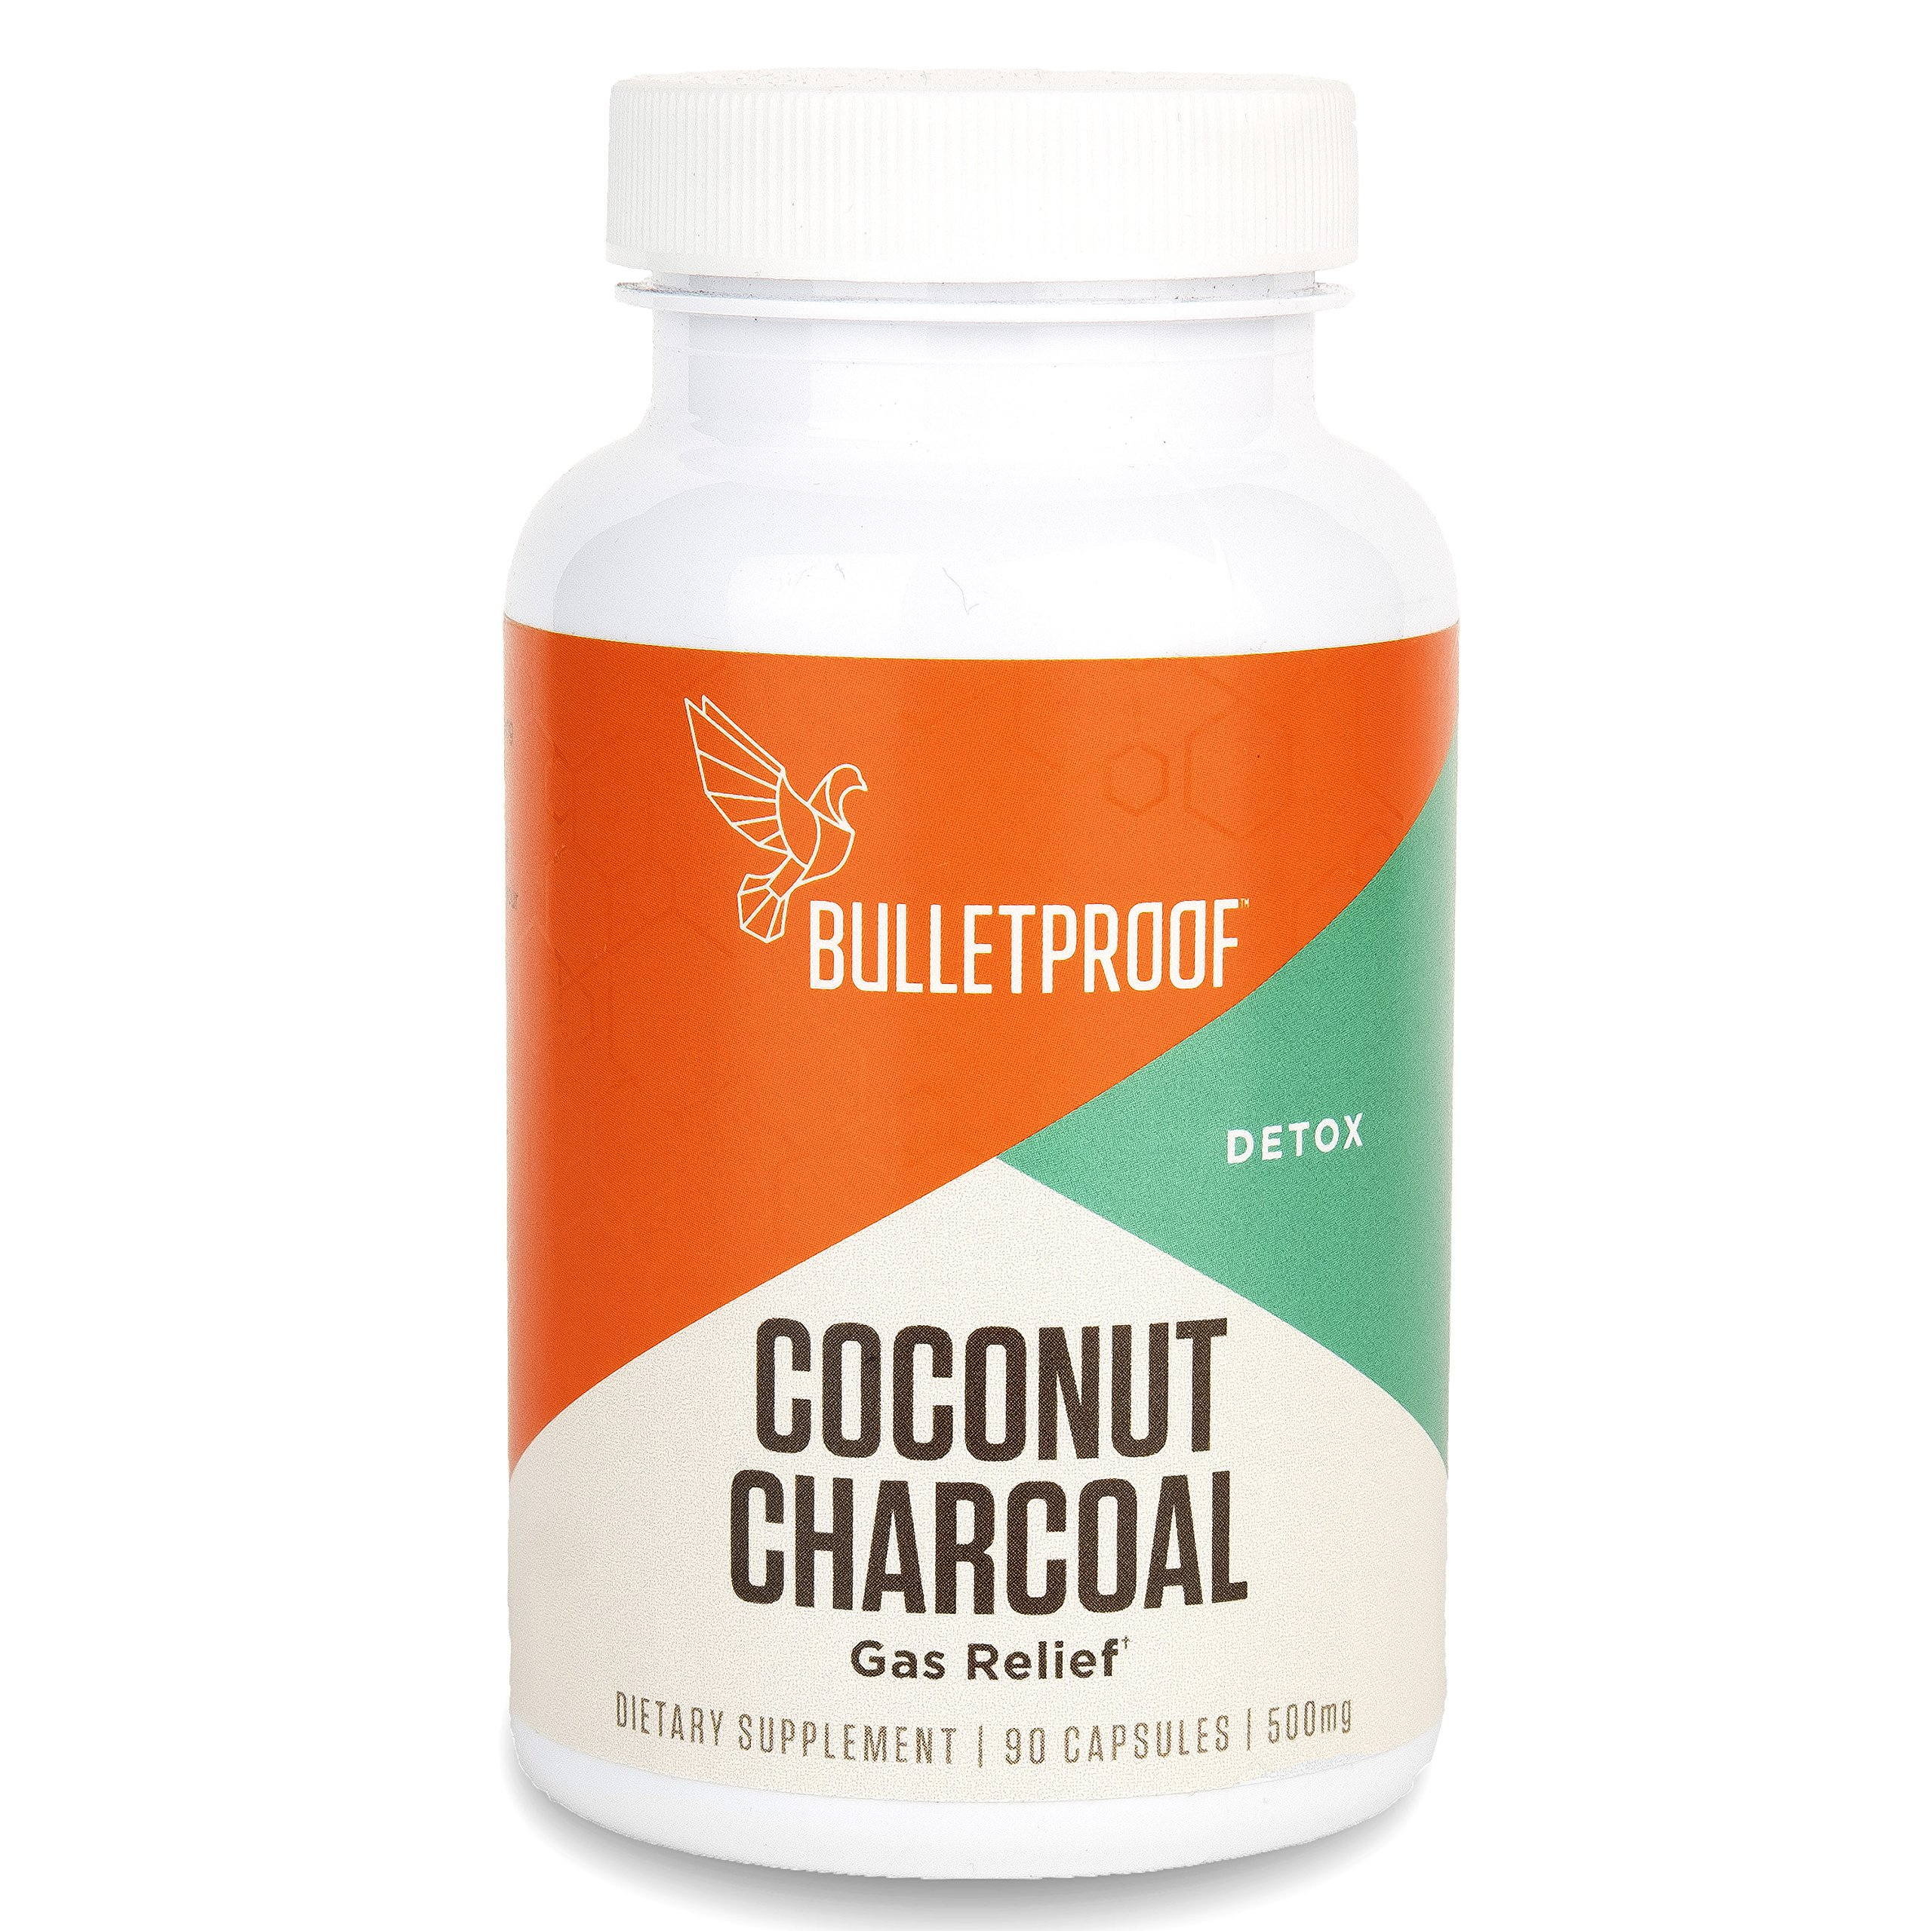 Bulletproof Coconut Charcoal, Supports Better Digestion and Gas Relief (90 Capsules)